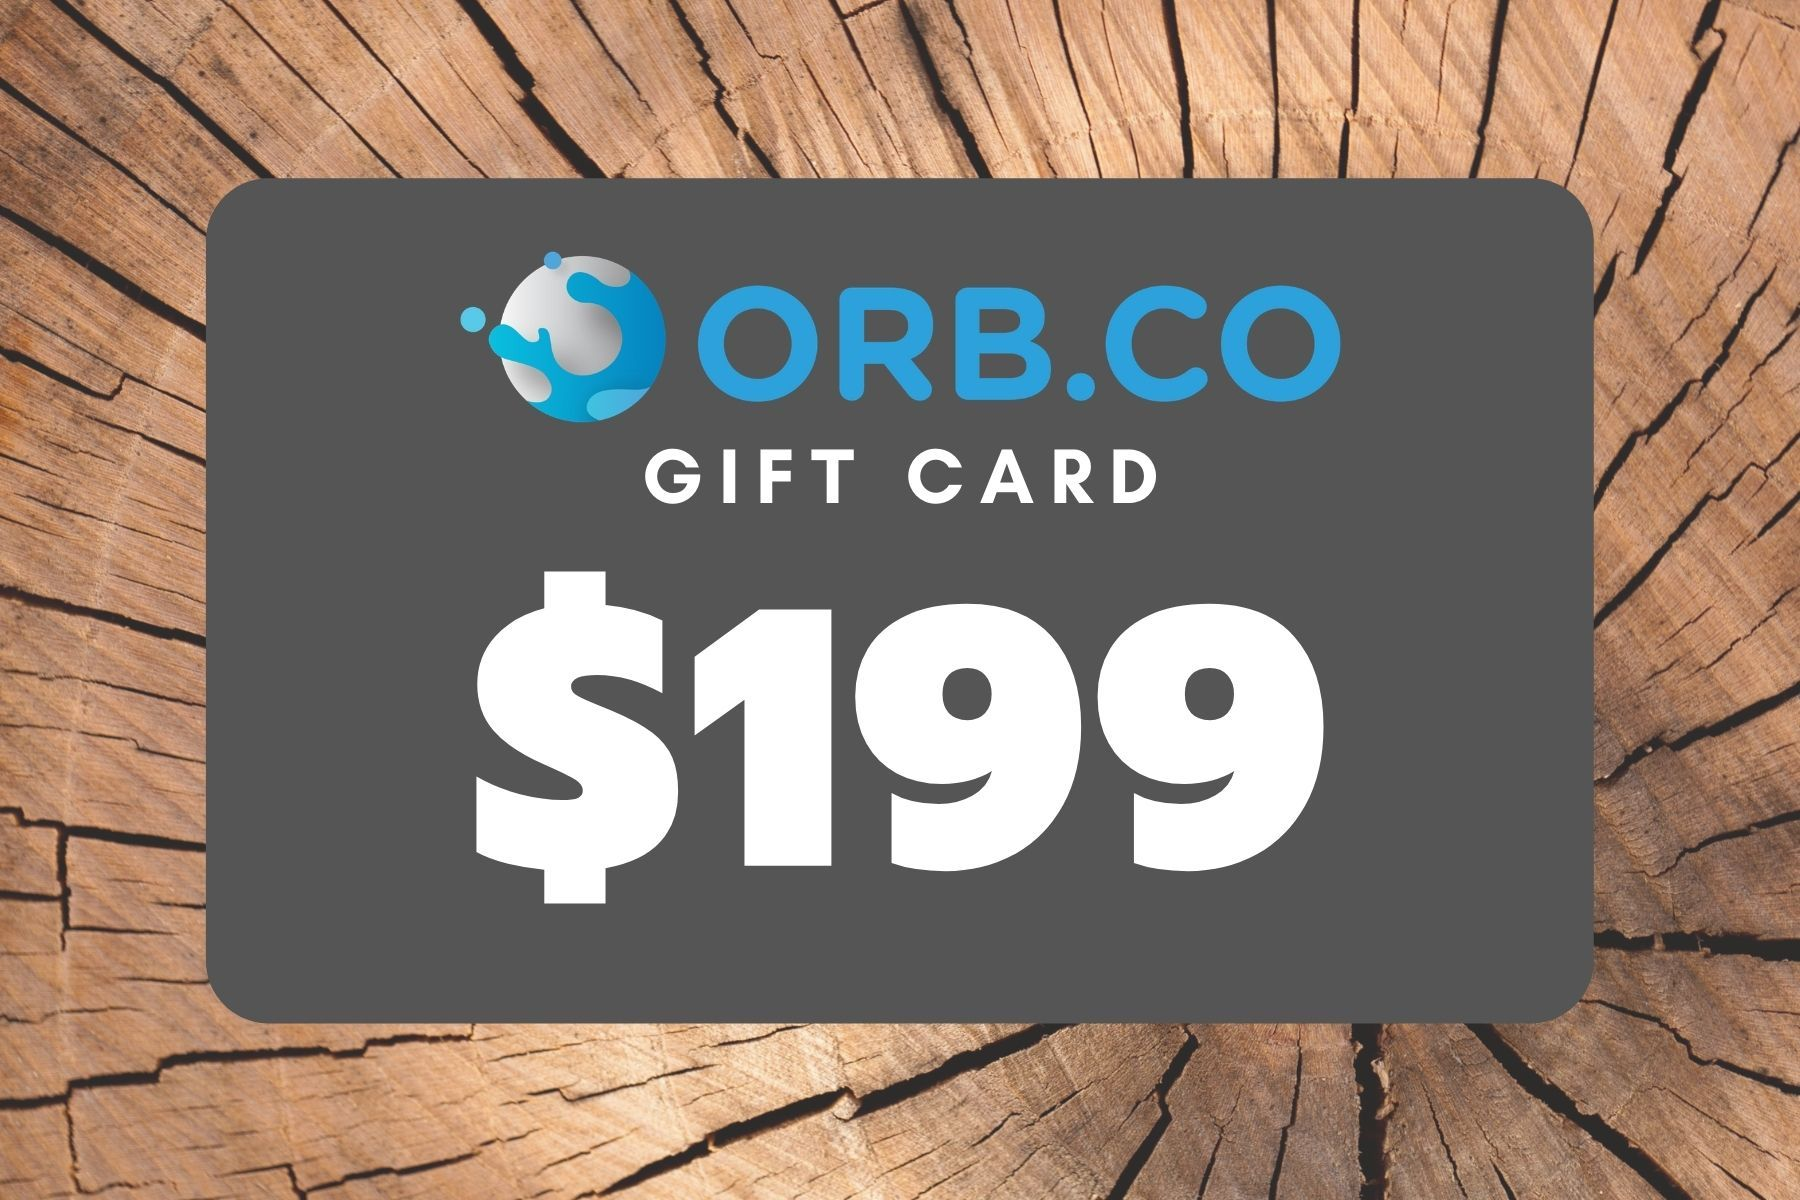 $199 Gift Card